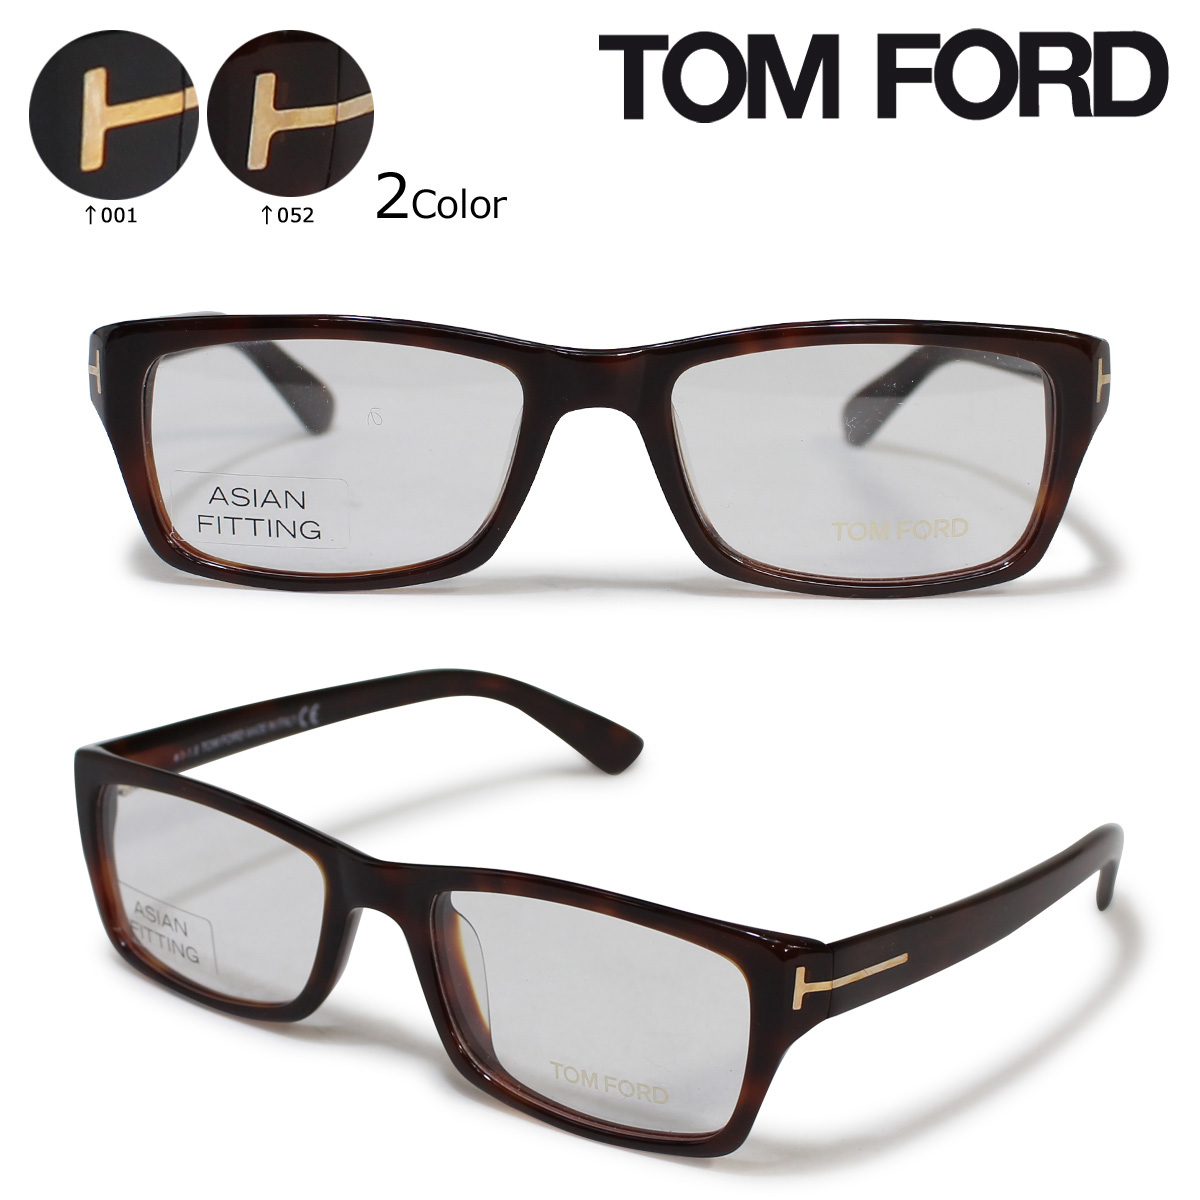 3f12cddf6e19 Whats up Sports  Tom Ford glasses TOM FORD eyewear men s ladies ...